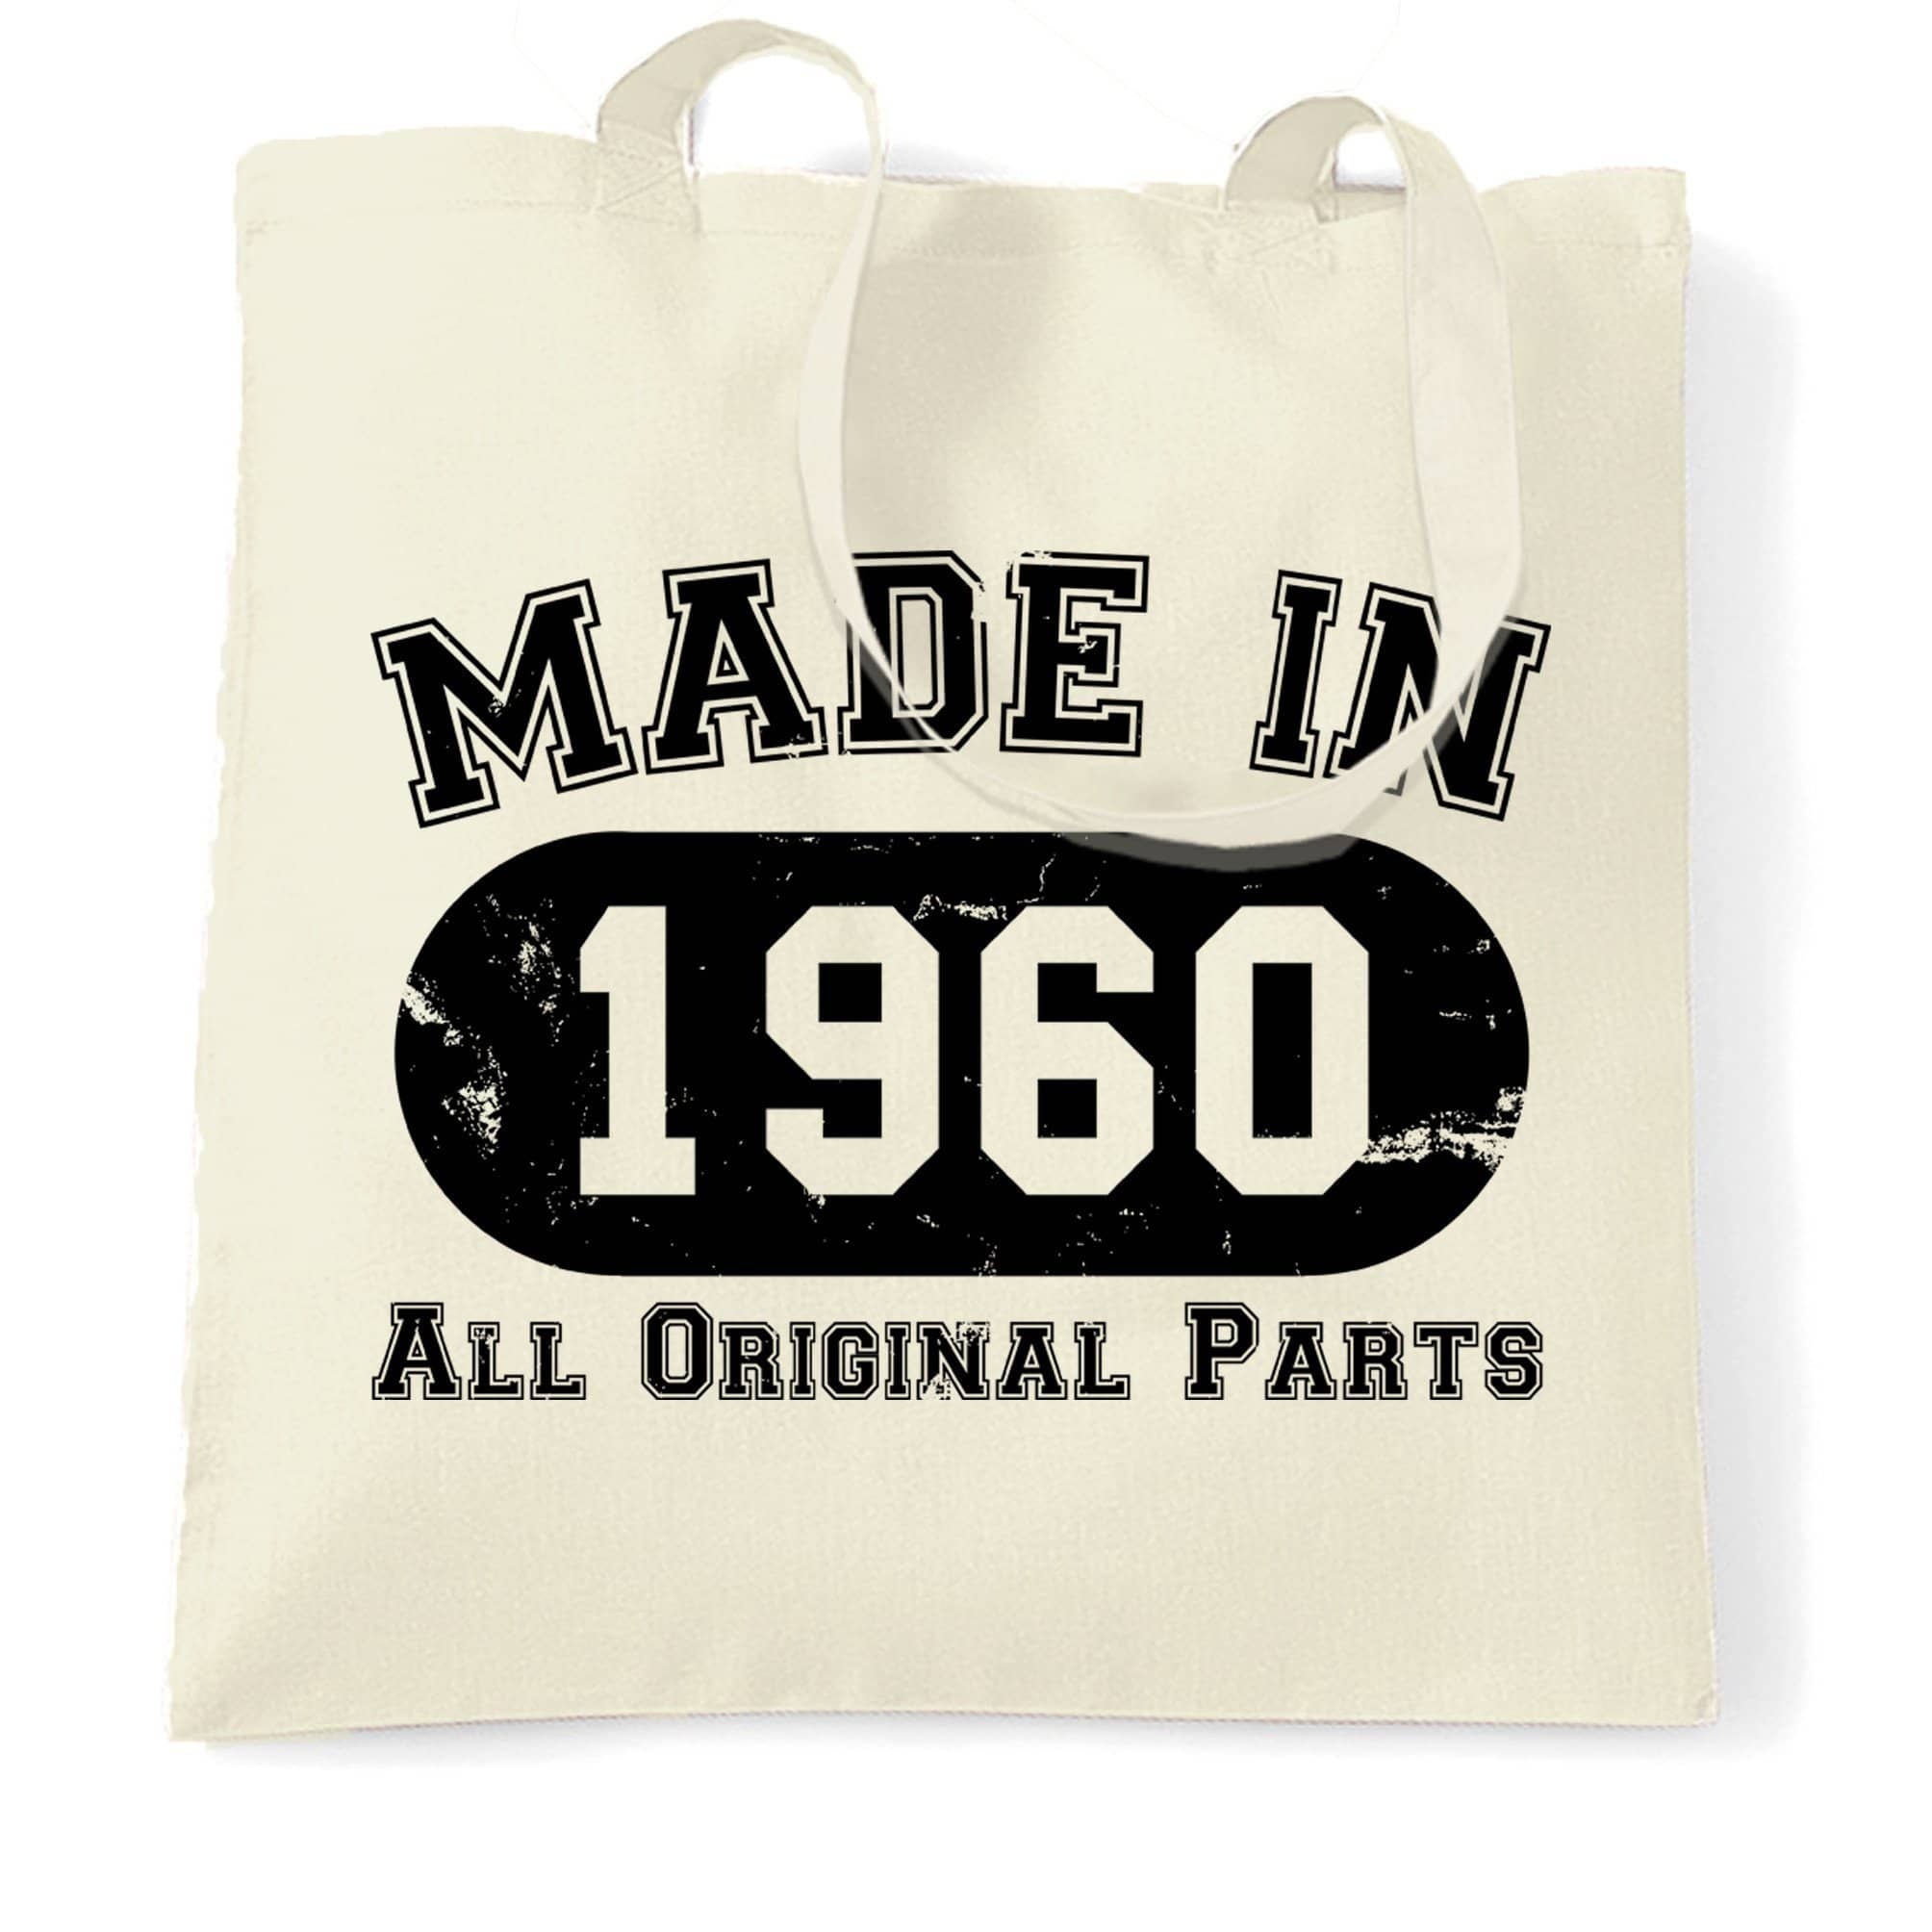 Made in 1960 All Original Parts Tote Bag [Distressed]